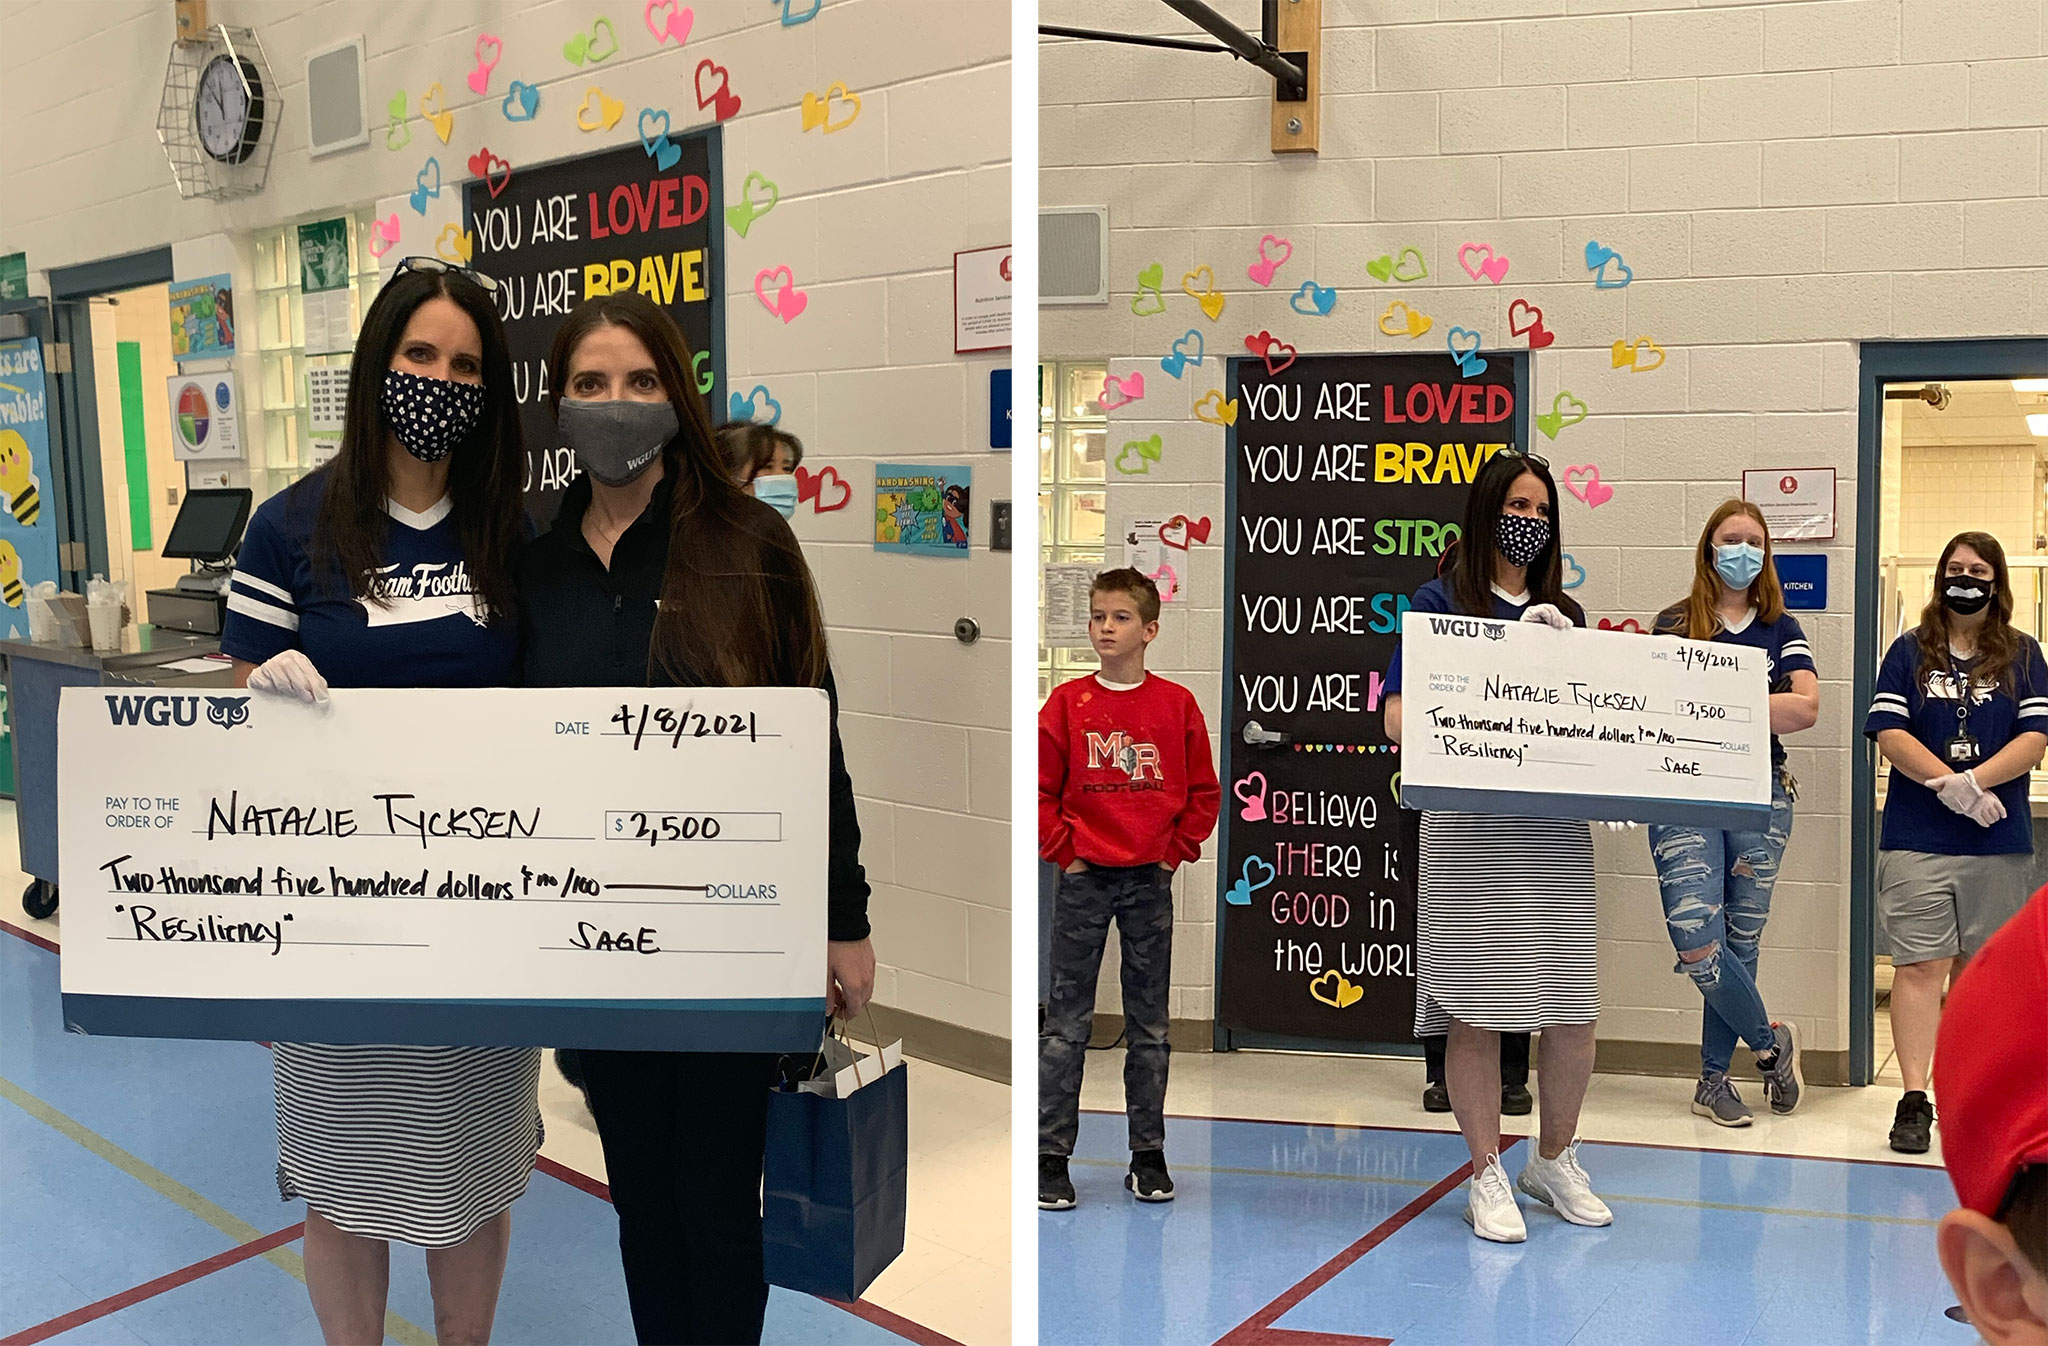 Natalie Tyksen Shows off the big check